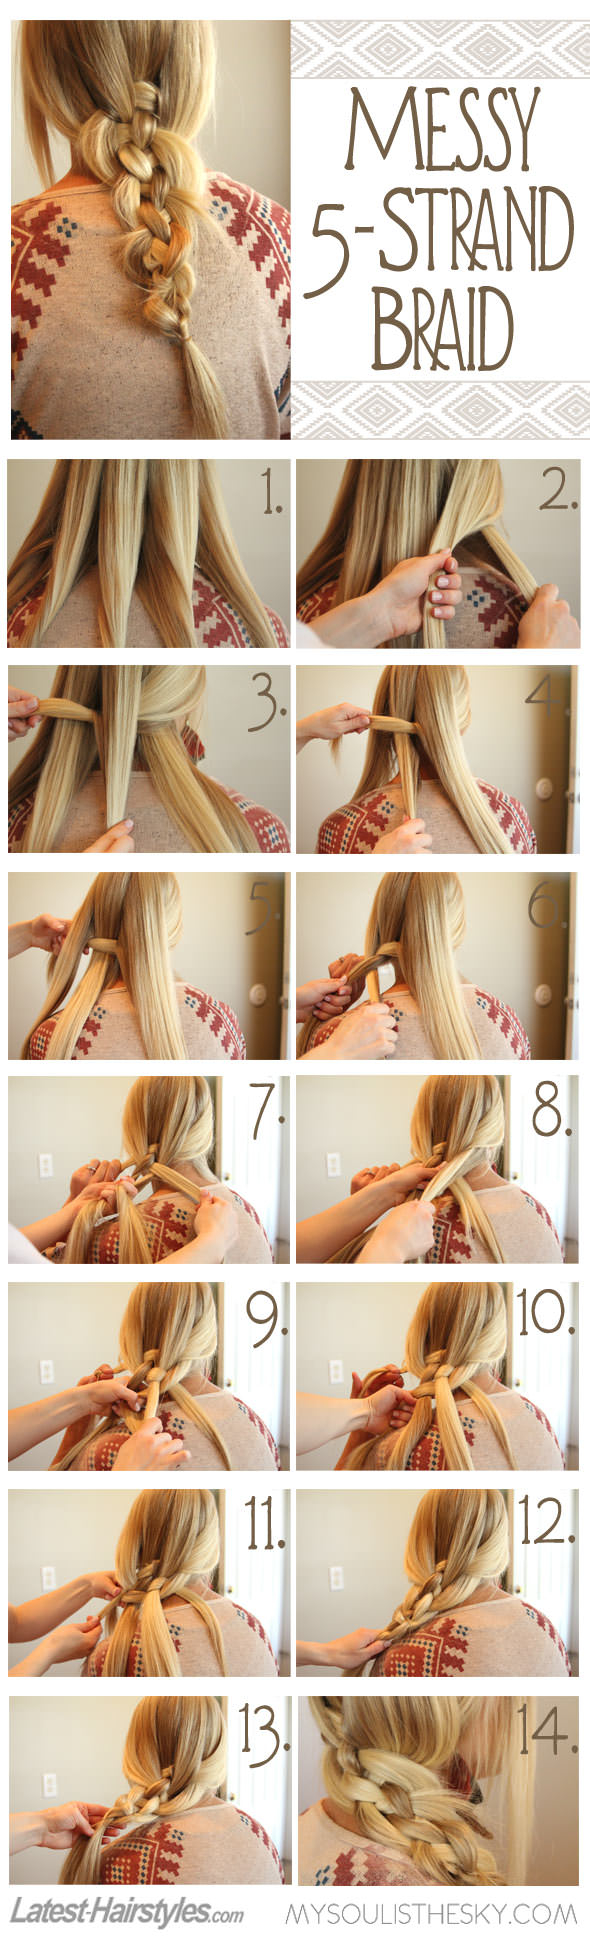 11 Super Easy Hairstyles To Make On Your Own